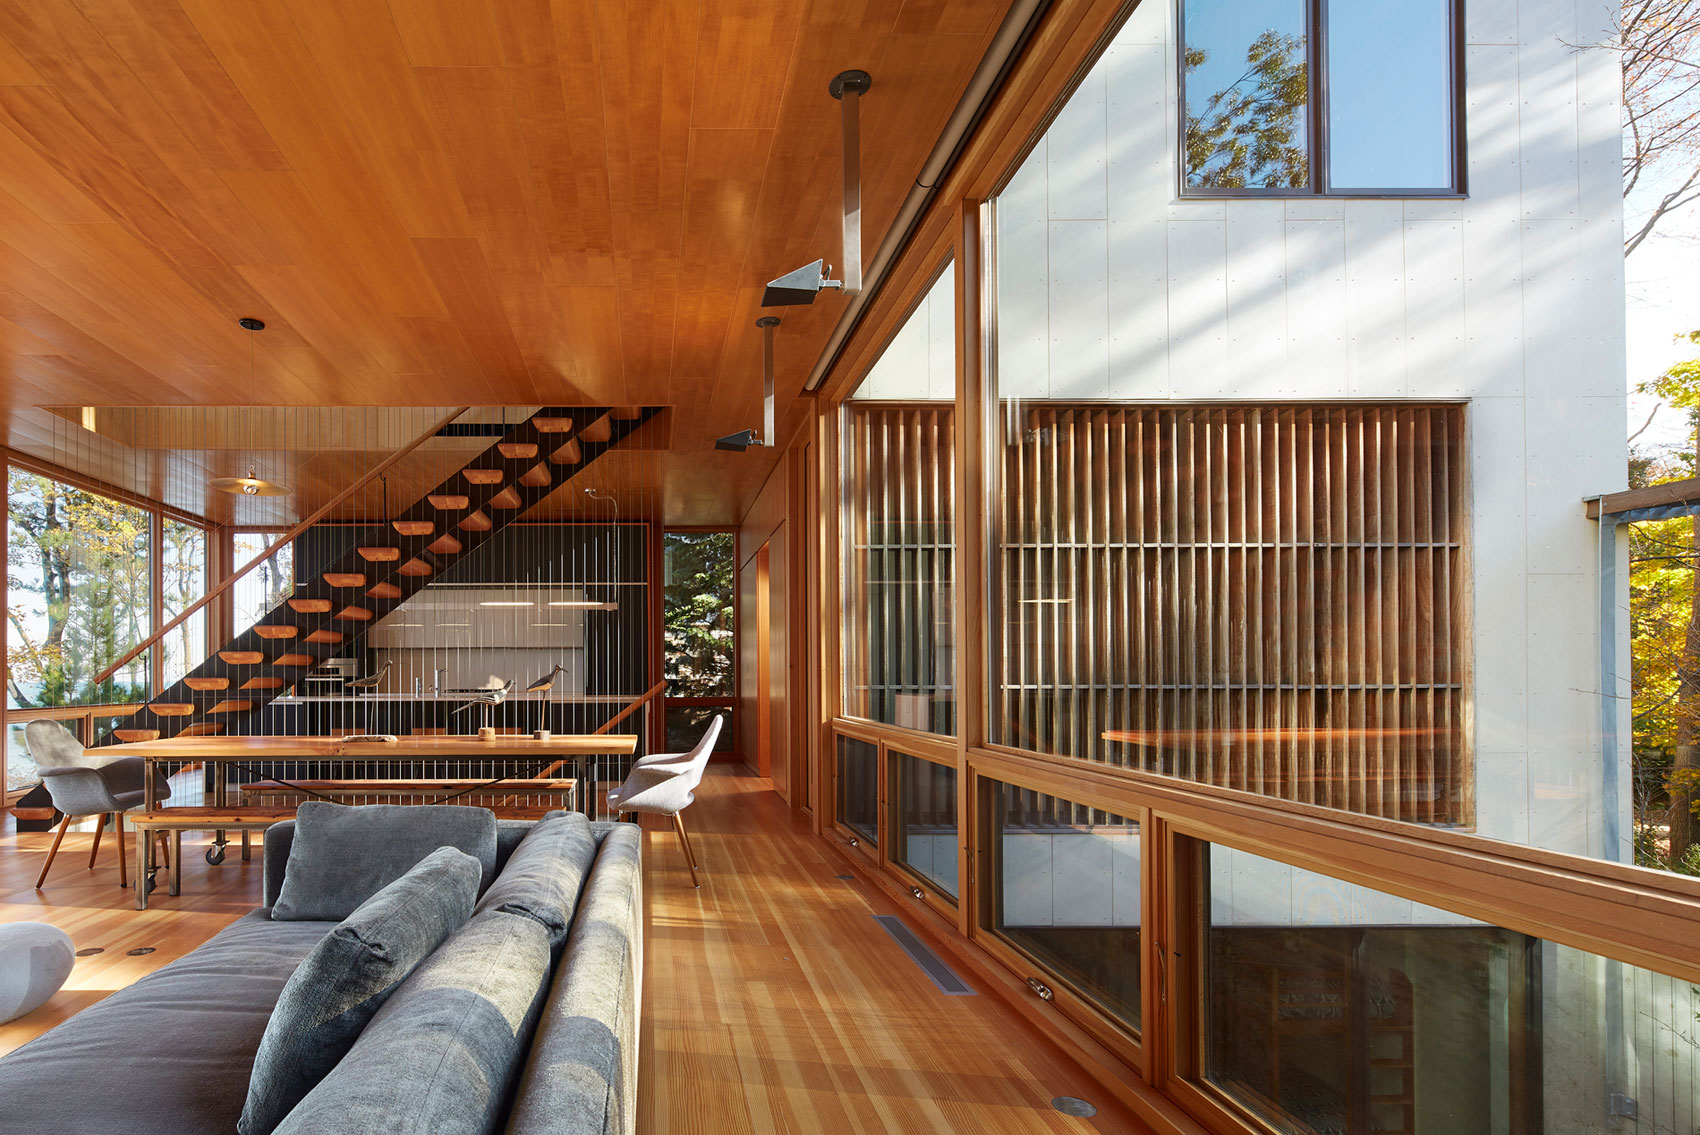 Tranquility and Simplicity Core Elements of Suns End Retreat in Harbert Michigan by Wheeler Kearns Architects-18